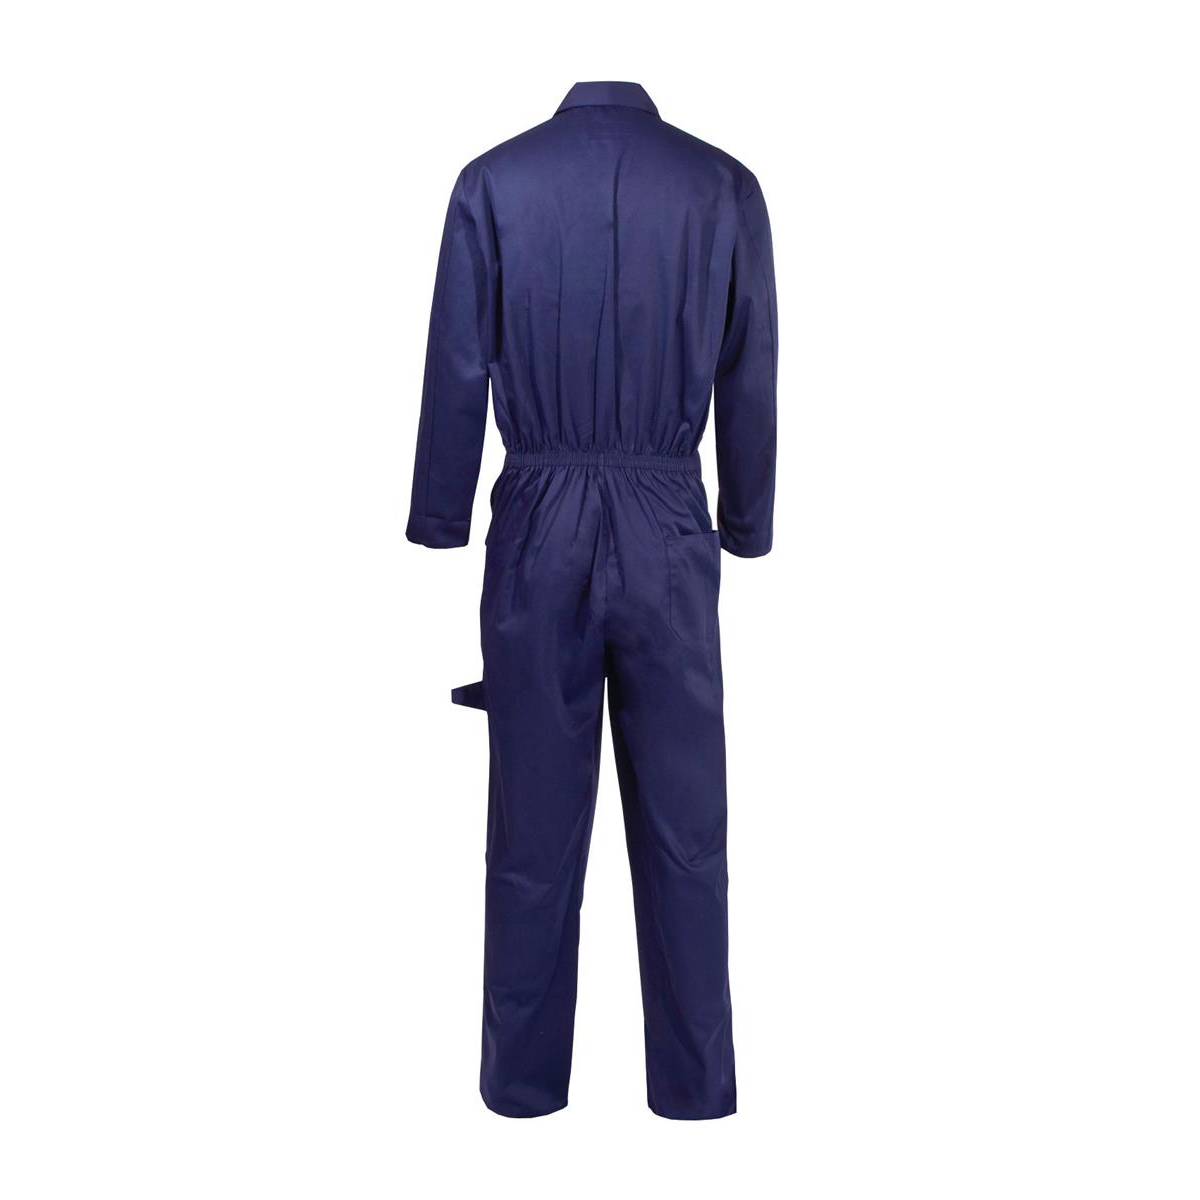 Coverall Basic with Popper Front Opening Polycotton Small Navy Ref RPCBSN38 Approx 3 Day Leadtime